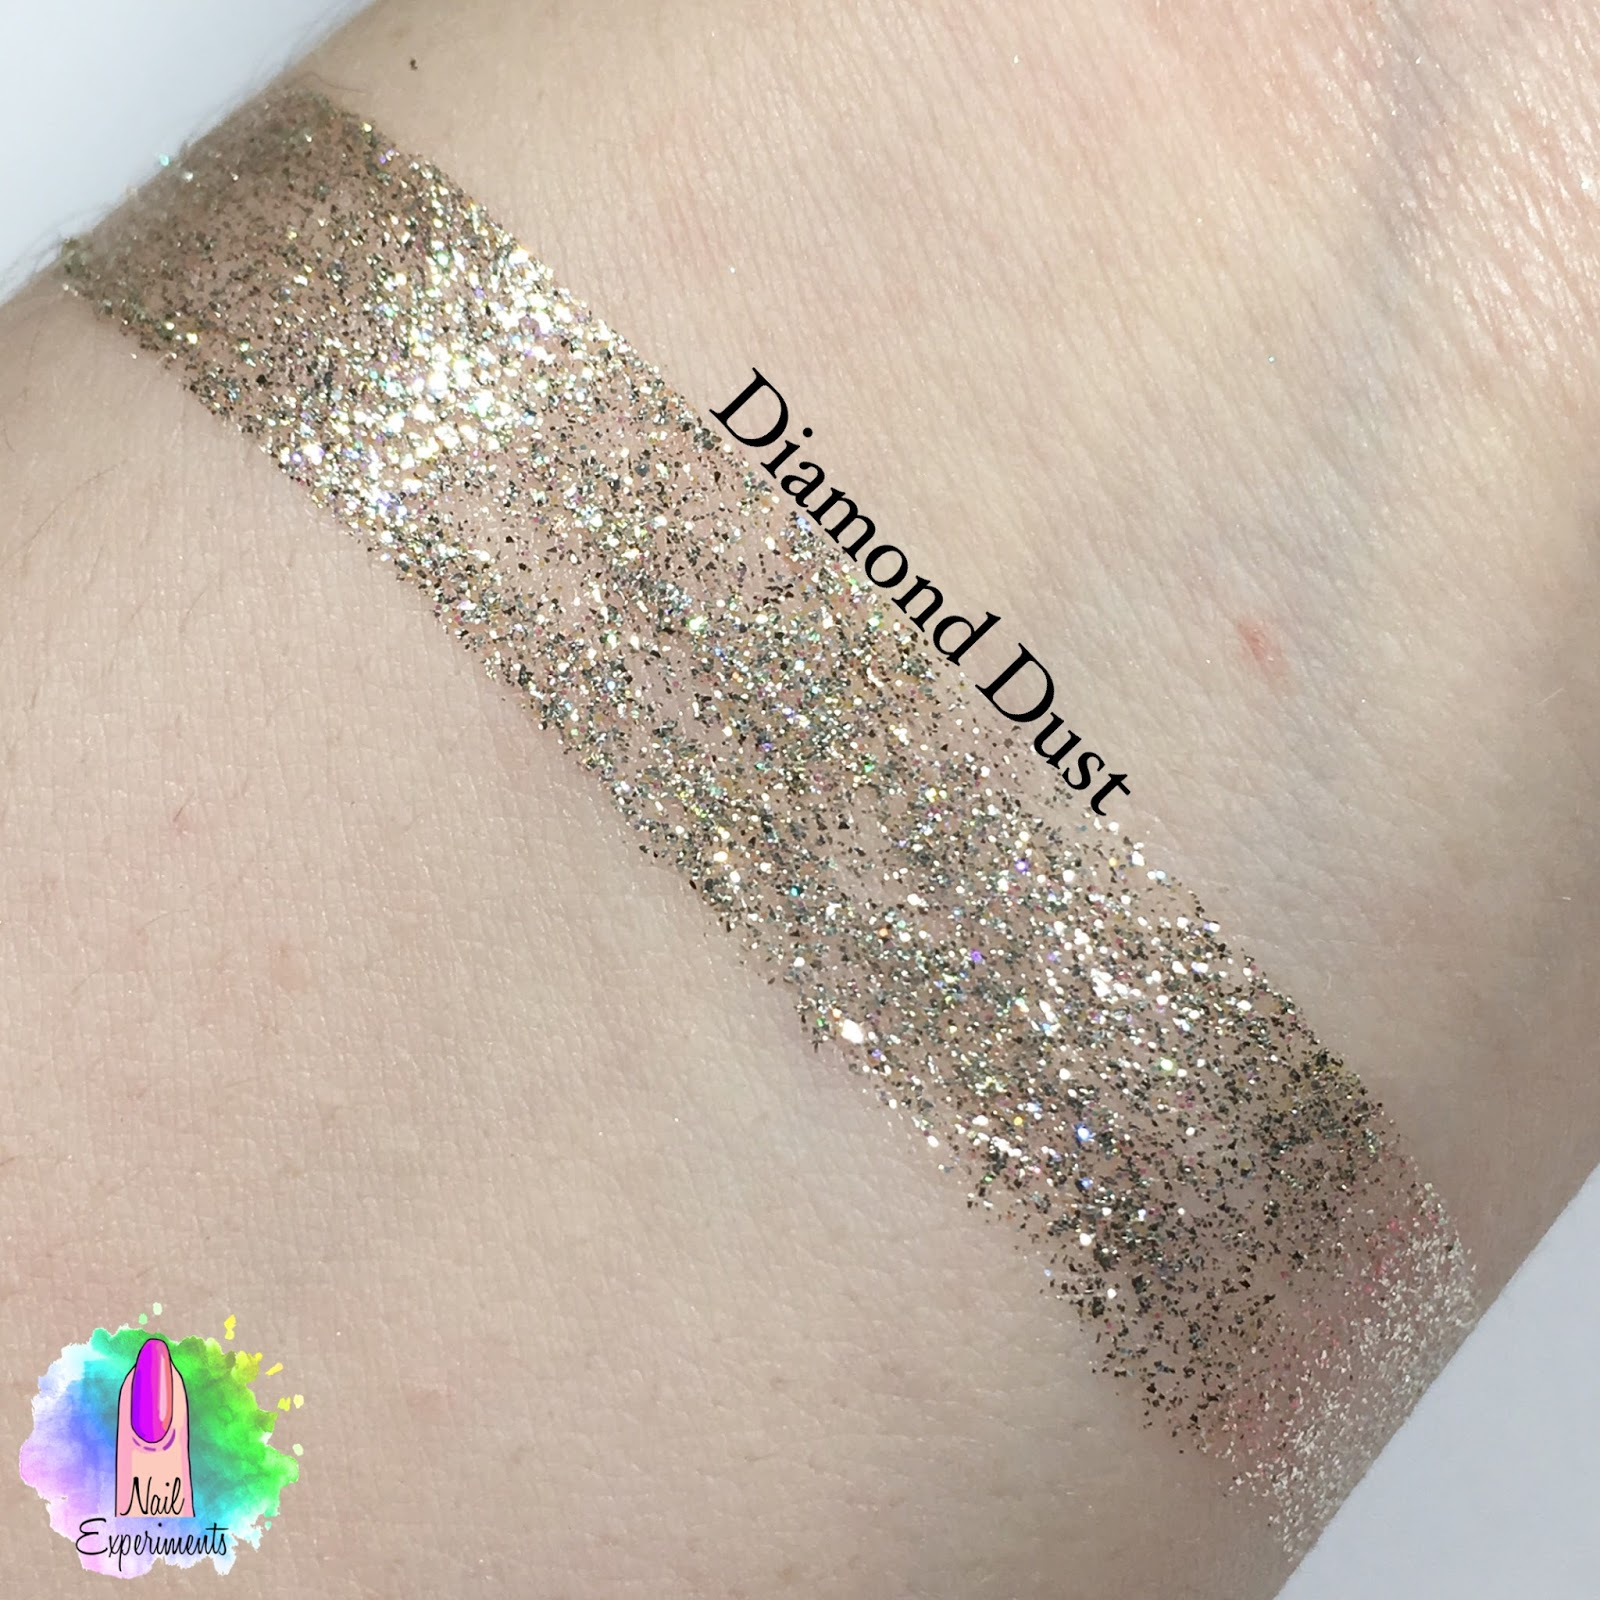 Stila magnificent metals glitter and glow liquid eye shadow swatch in Diamond Dust